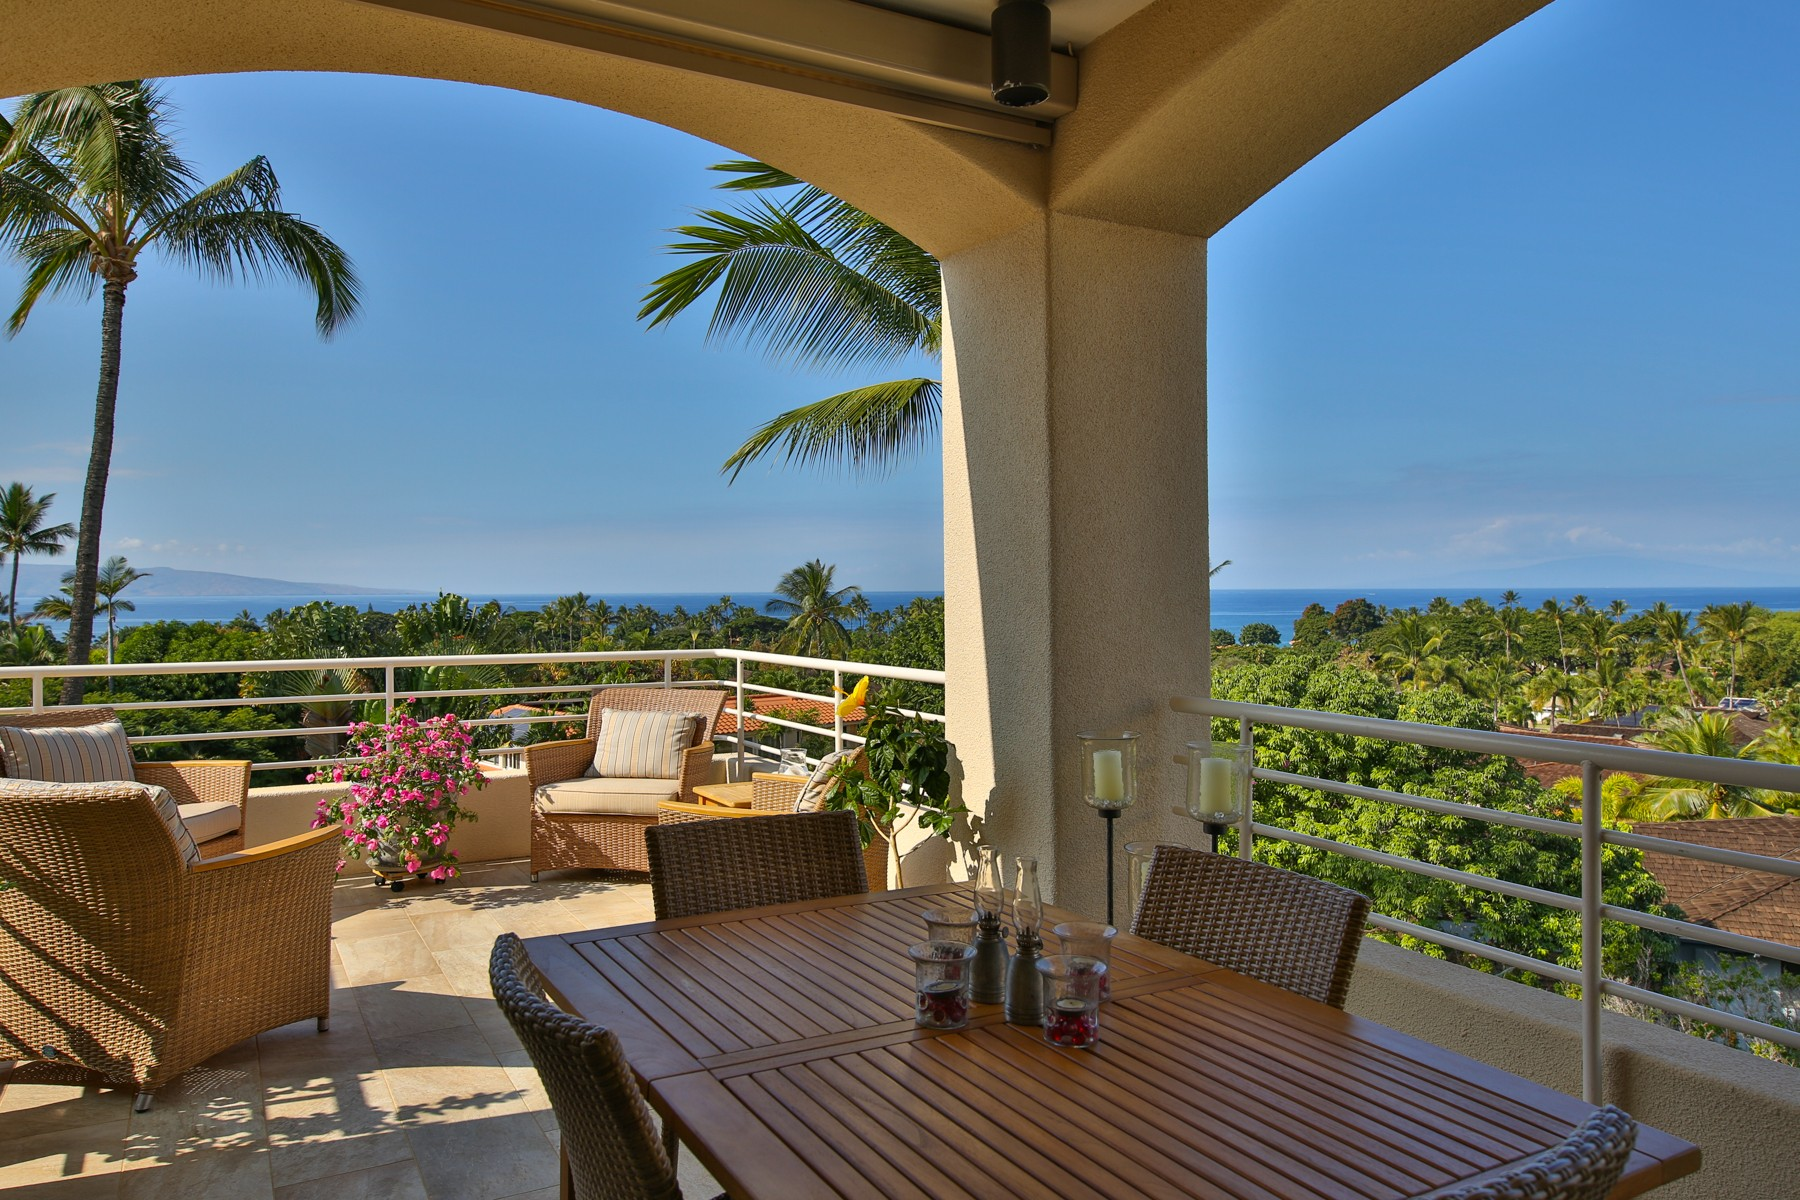 コンドミニアム のために 売買 アット Intriguing Ocean & Sunset Views All-Year-round 3150 Wailea Alanui Drive, Wailea Palms 3504 Wailea, ハワイ, 96753 アメリカ合衆国